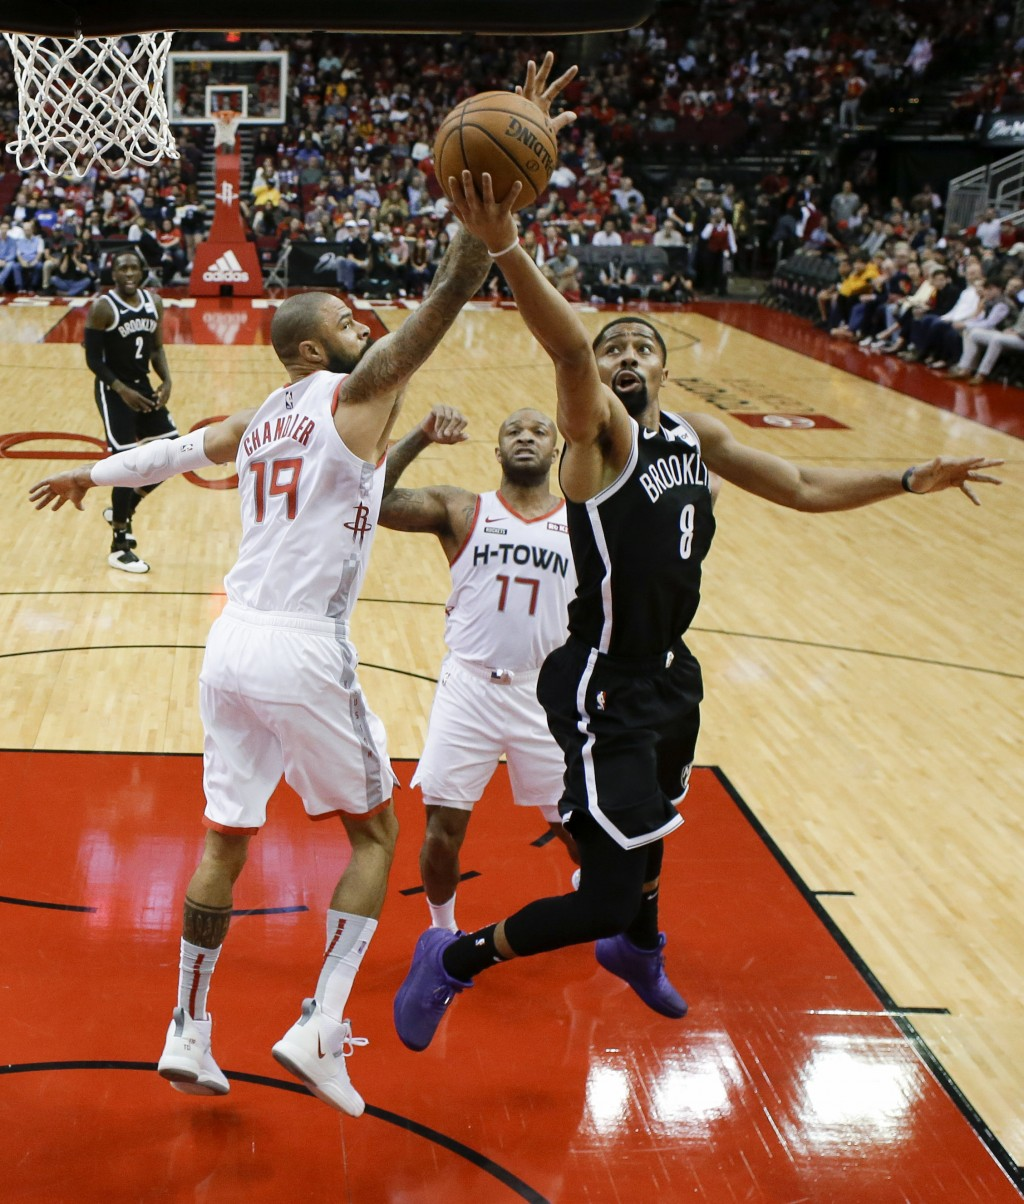 Brooklyn Nets guard Spencer Dinwiddie (8) drives to the basket as Houston Rockets center Tyson Chandler (19) defends during the first half of an NBA b...